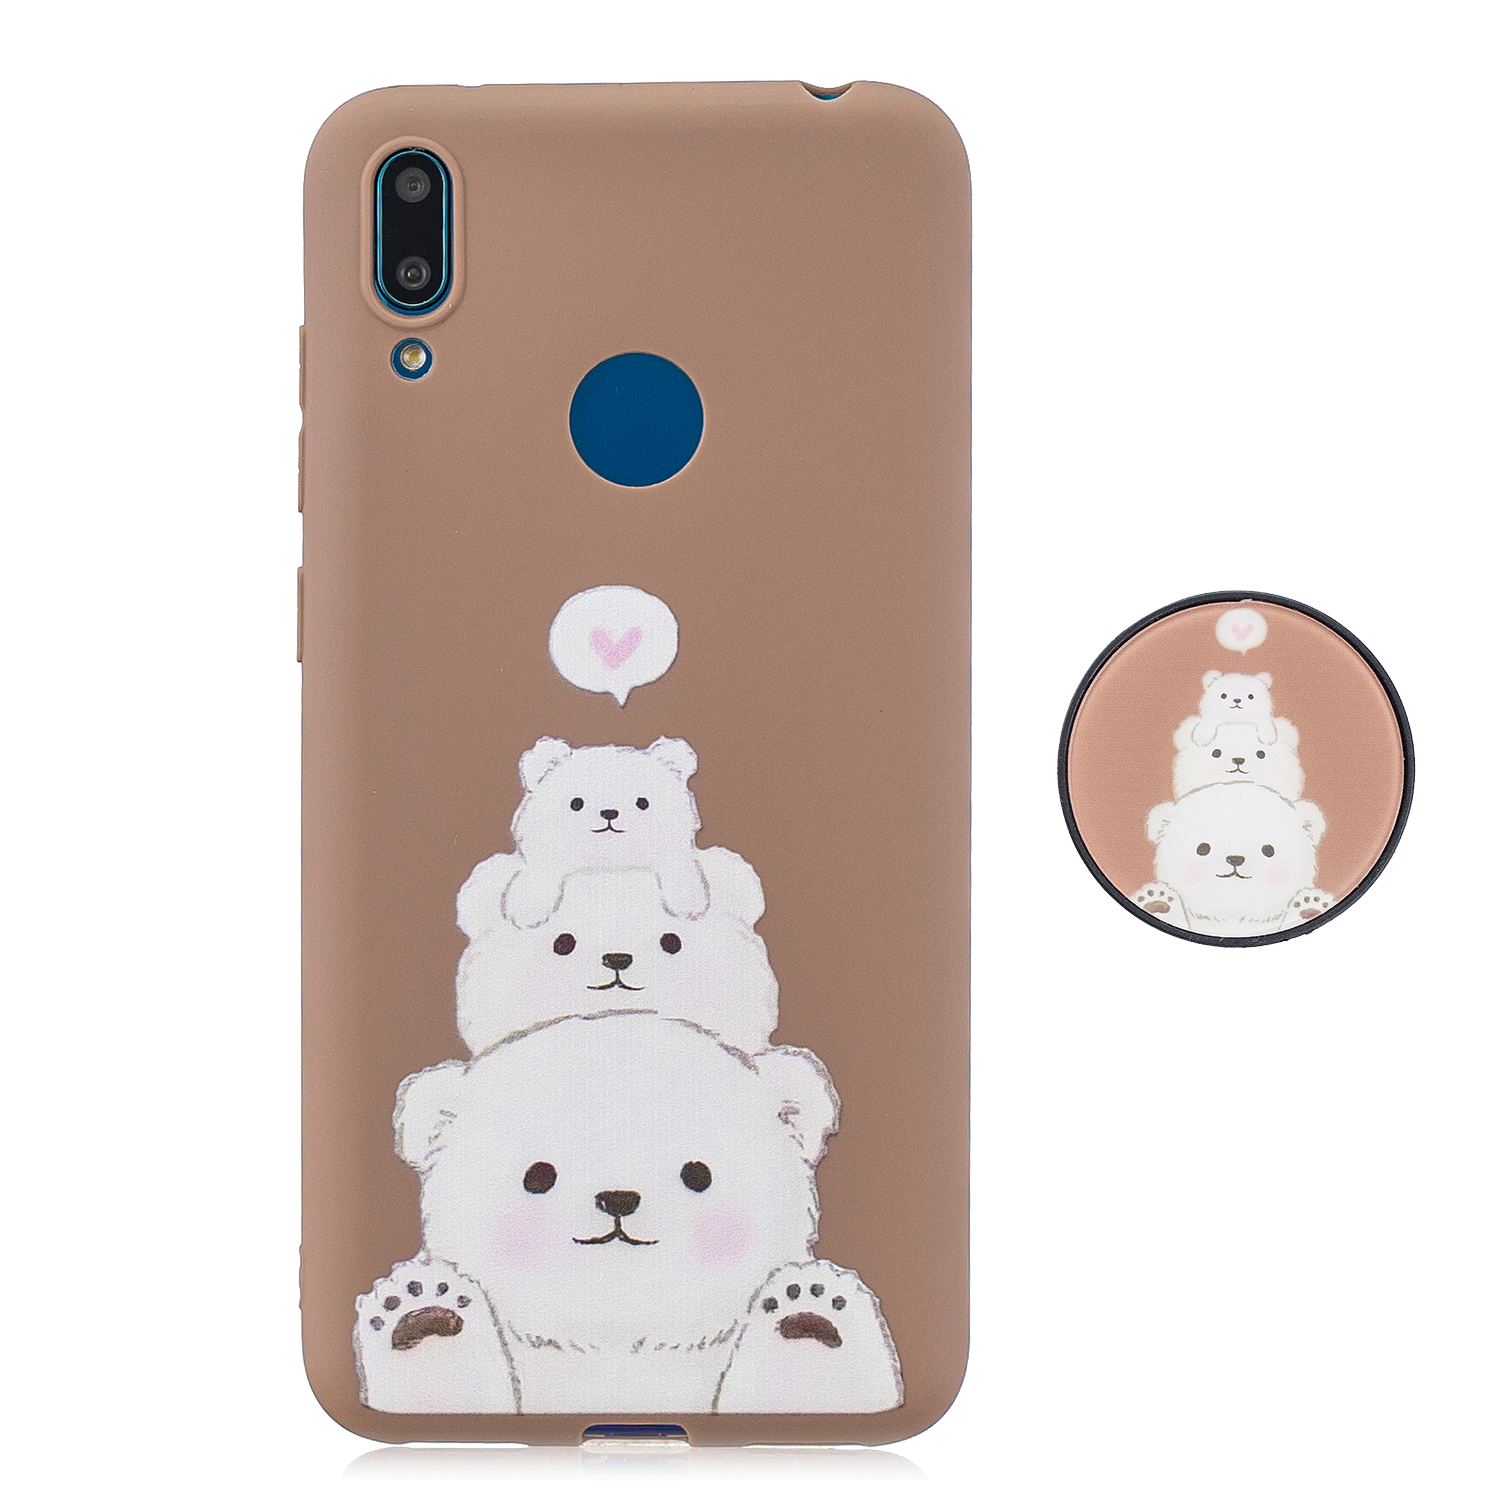 For HUAWEI Y7 2019 Flexible Stand Holder Case Soft TPU Full Cover Case Phone Cover Cute Phone Case 3